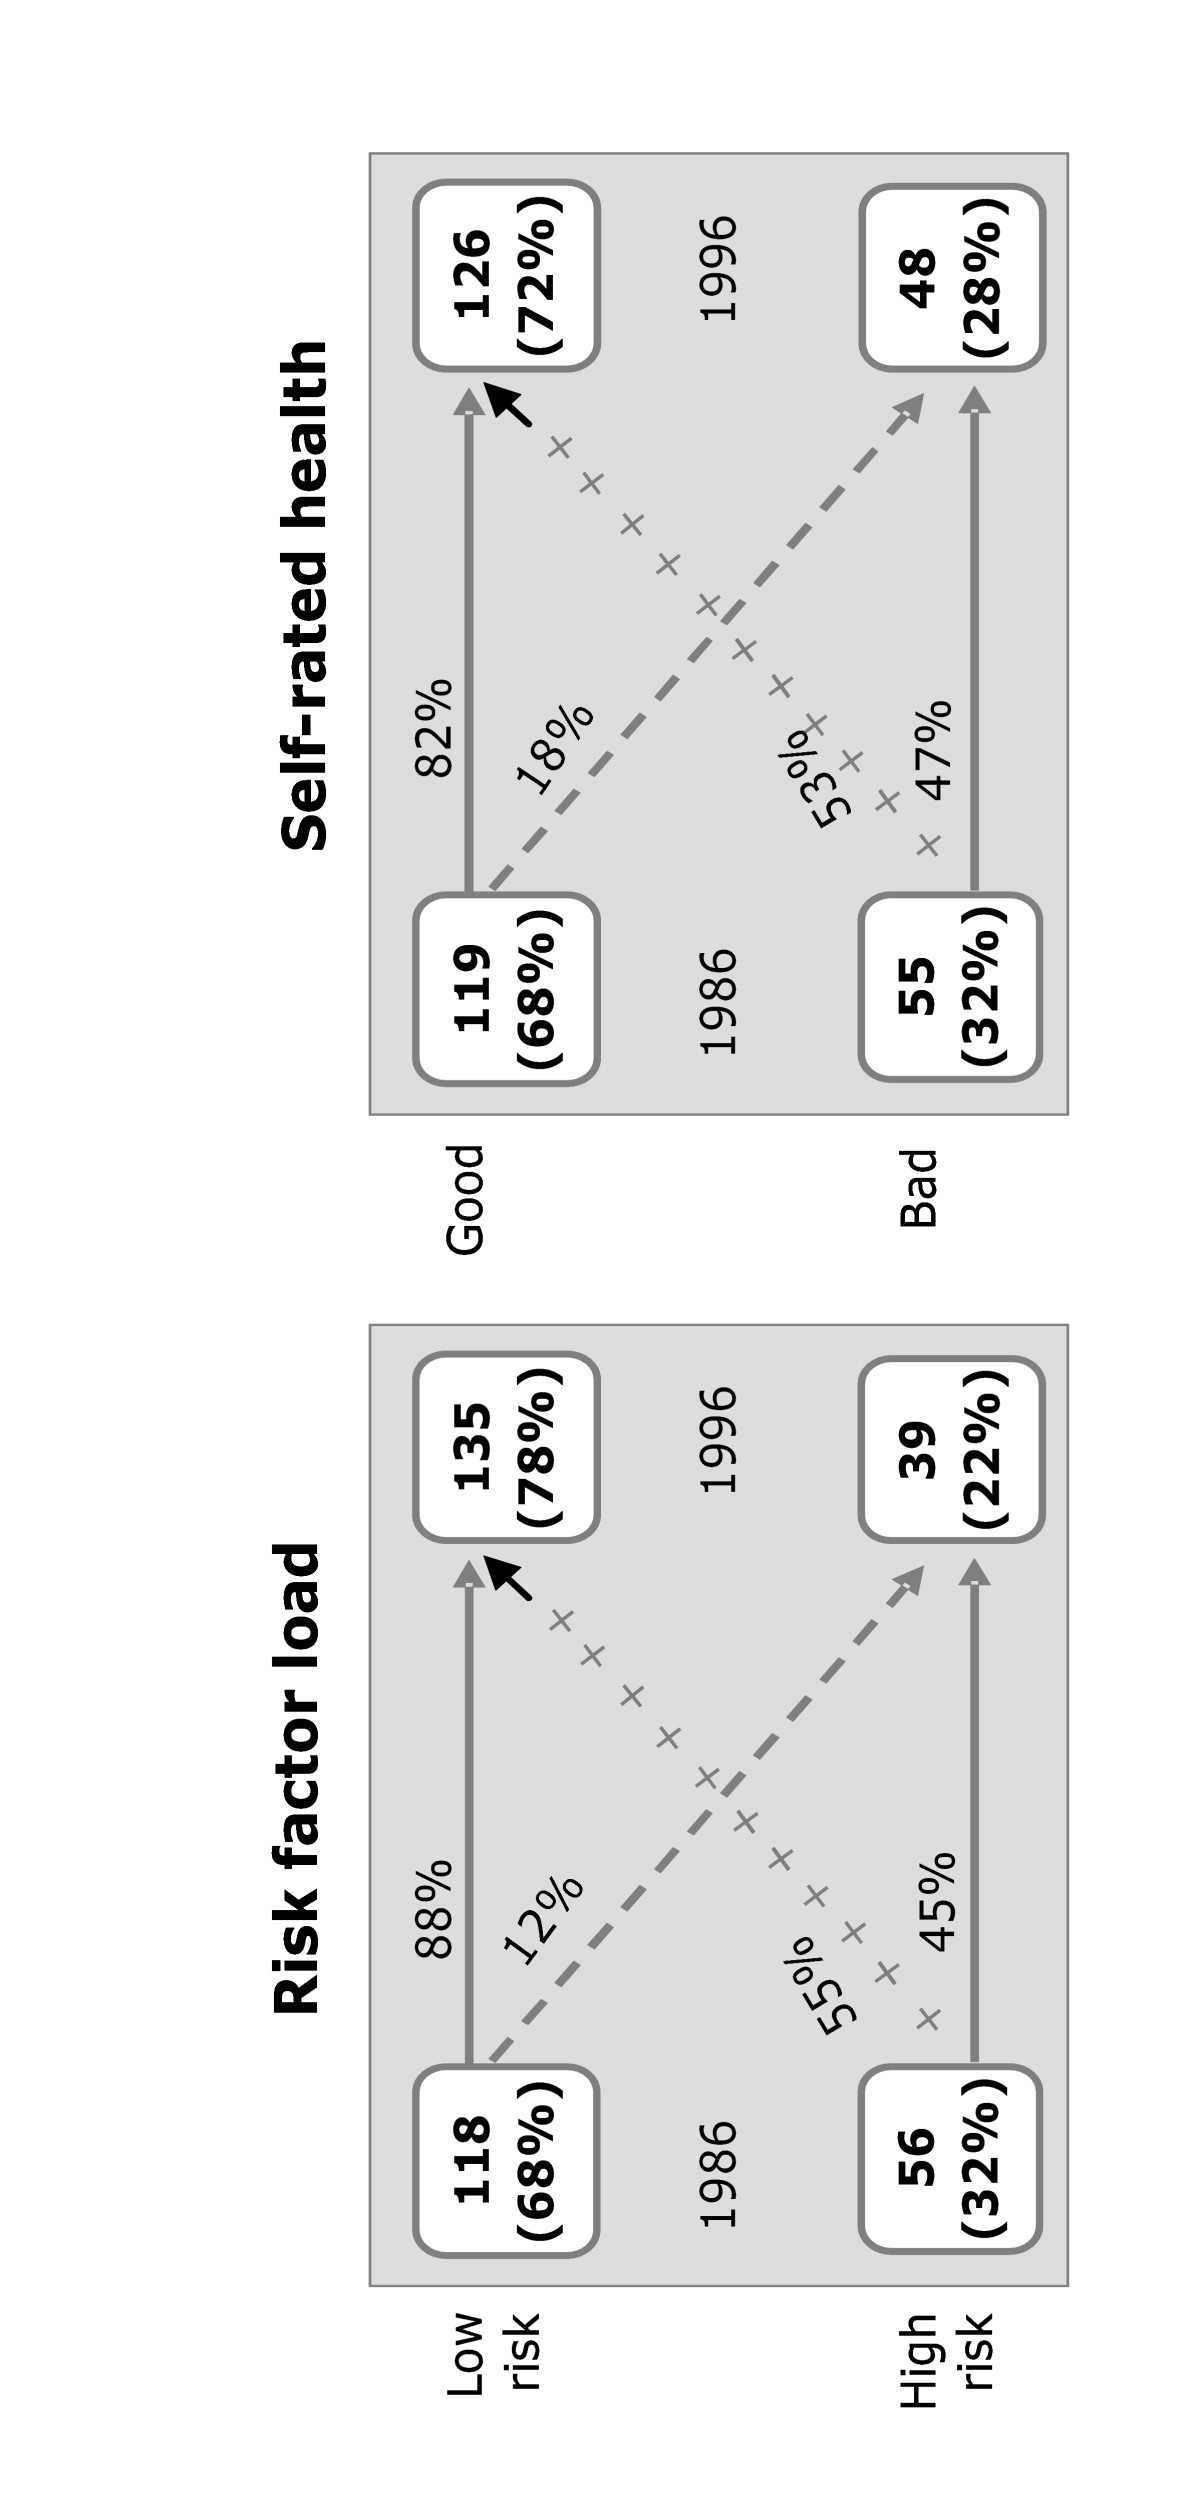 https://static-content.springer.com/image/art%3A10.1186%2F1471-2458-7-190/MediaObjects/12889_2006_Article_801_Fig2_HTML.jpg